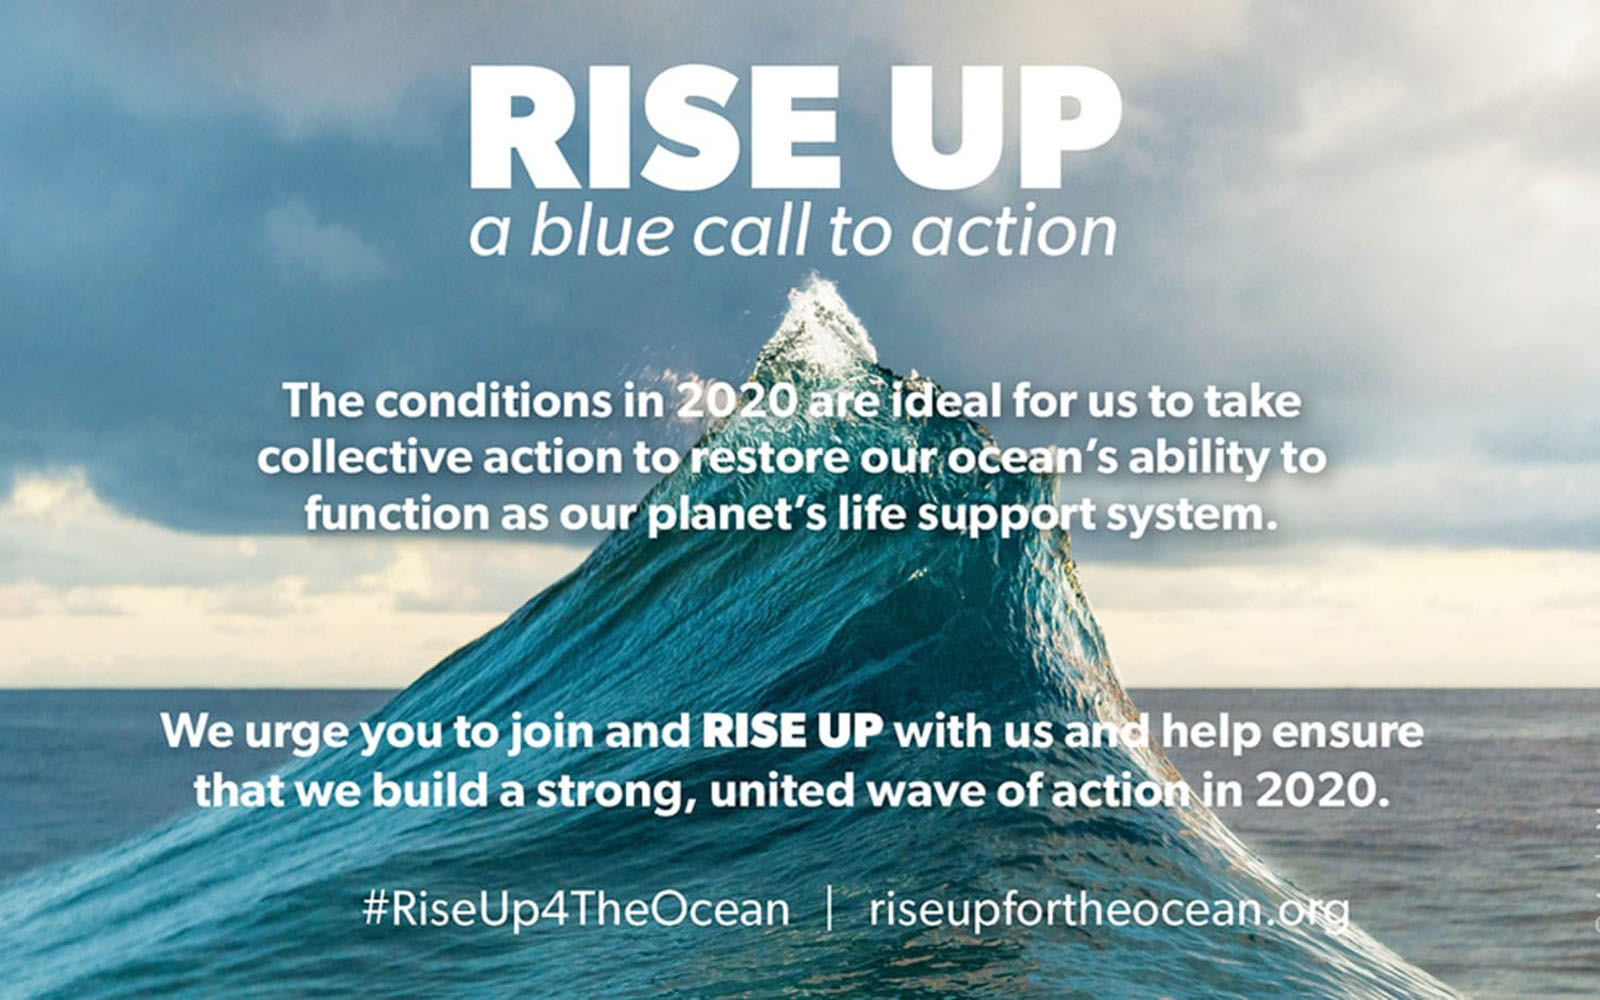 picture of a wave from rise up with a blue call to action information the image